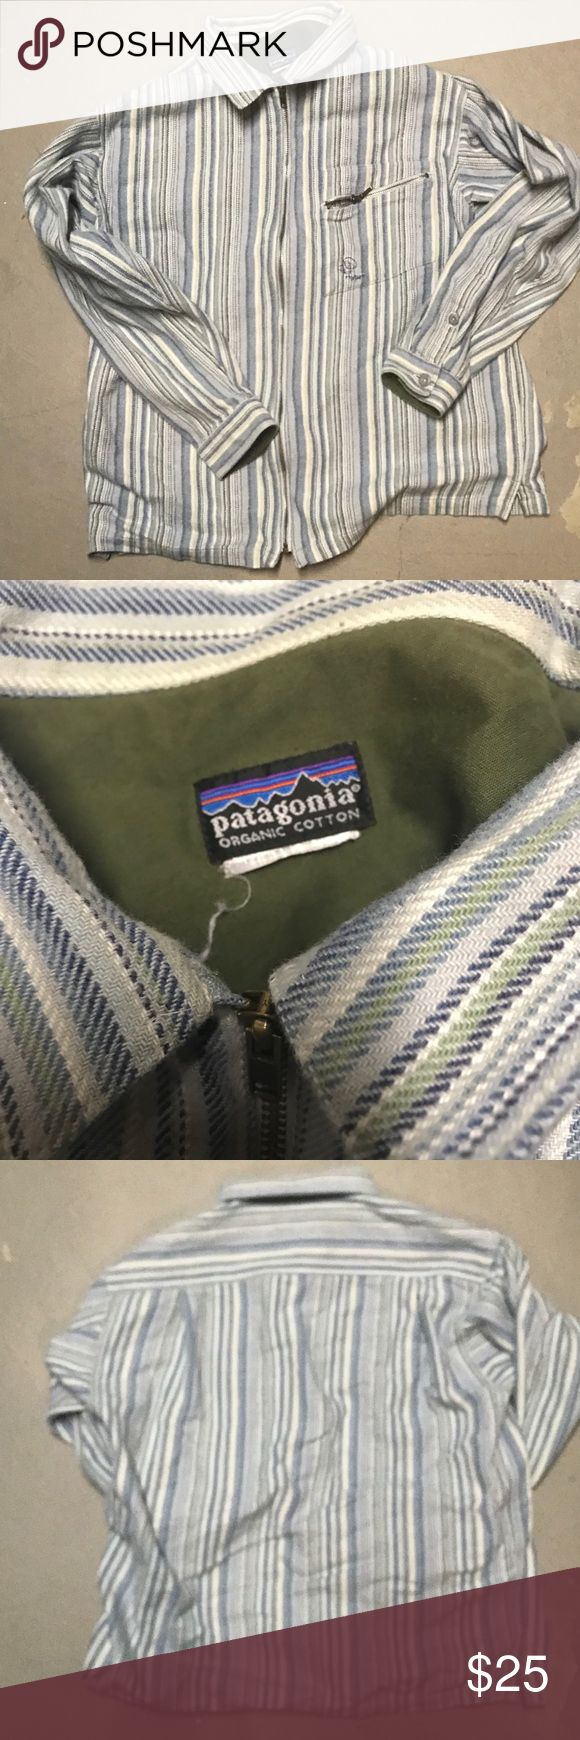 Blue and white striped men's zip up shirt This shirt is pretty thick, more like a jacket. It is extremely warm. It is a men's size large, but can fit a woman in xl-xxl. Patagonia Shirts Sweatshirts & Hoodies